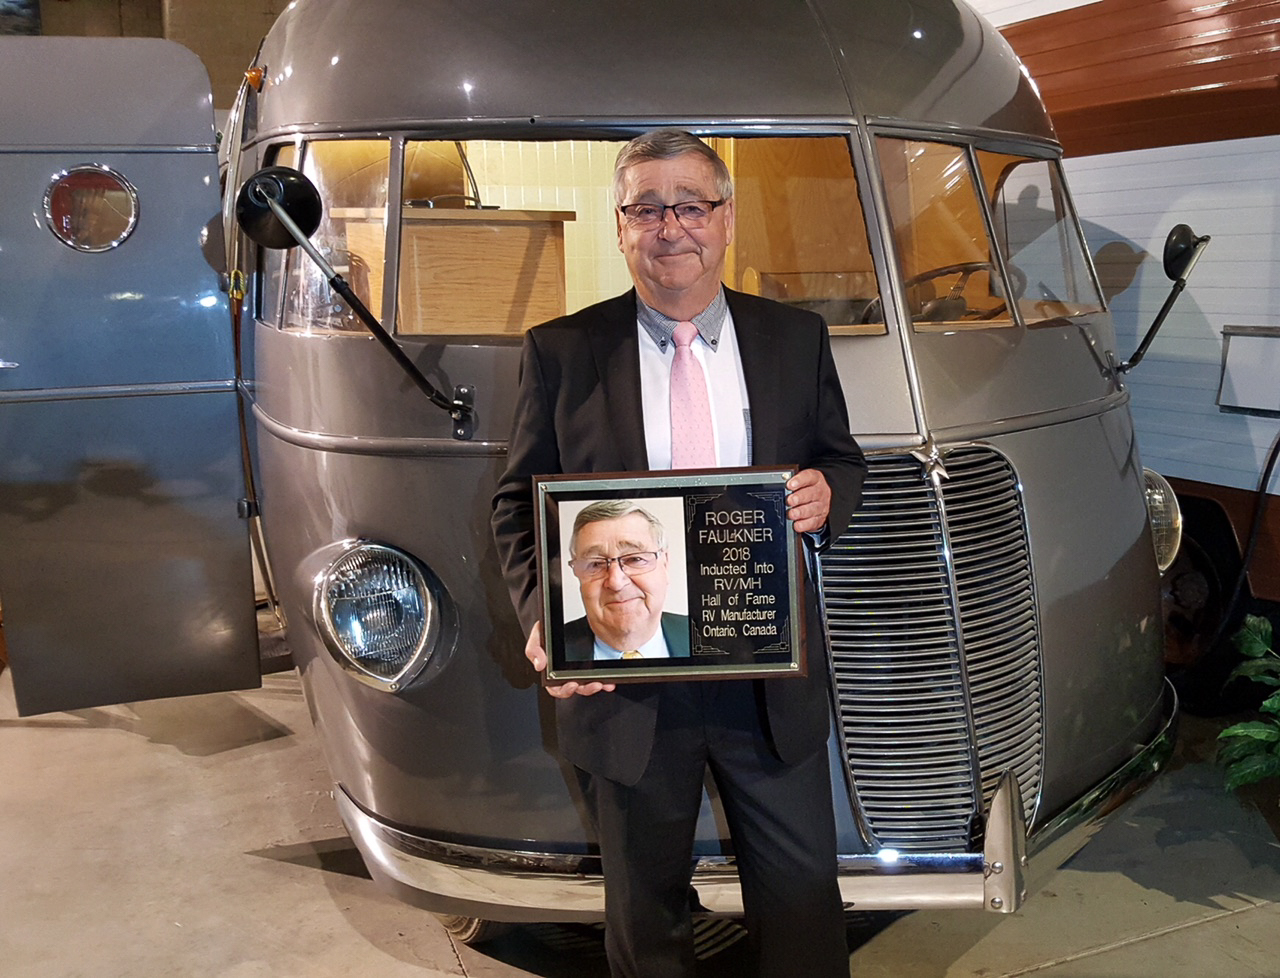 Roger Faulkner Inducted Into Rv Mh Hall Of Fame Rv Dealer News